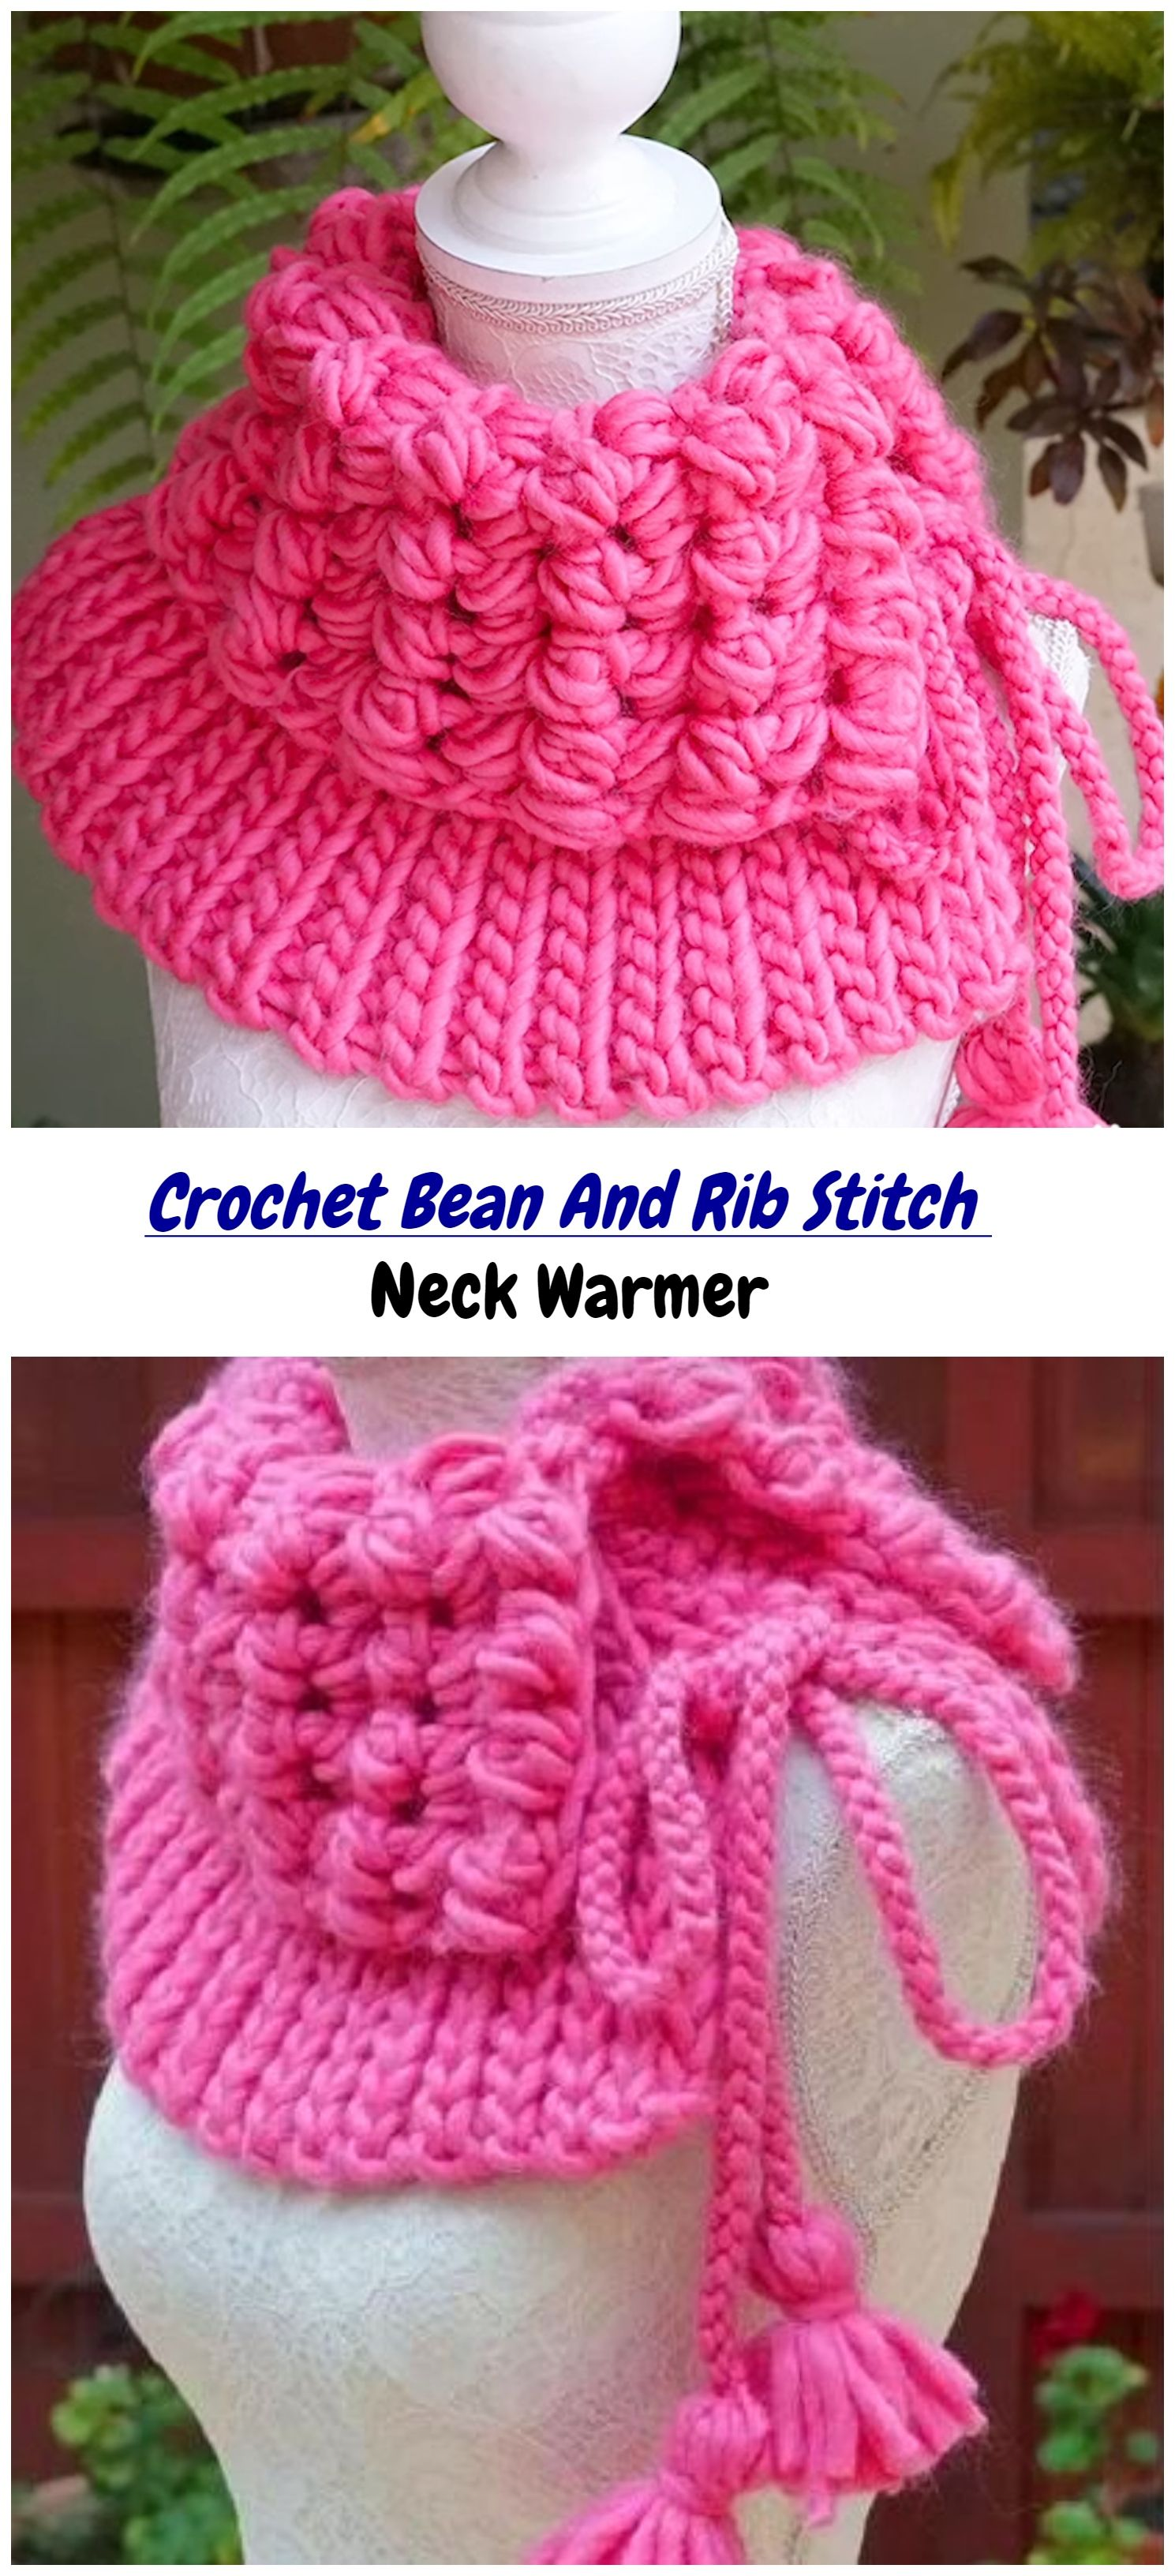 Crochet Bean And Rib Stitch Neck Warmer Crafts Crochet